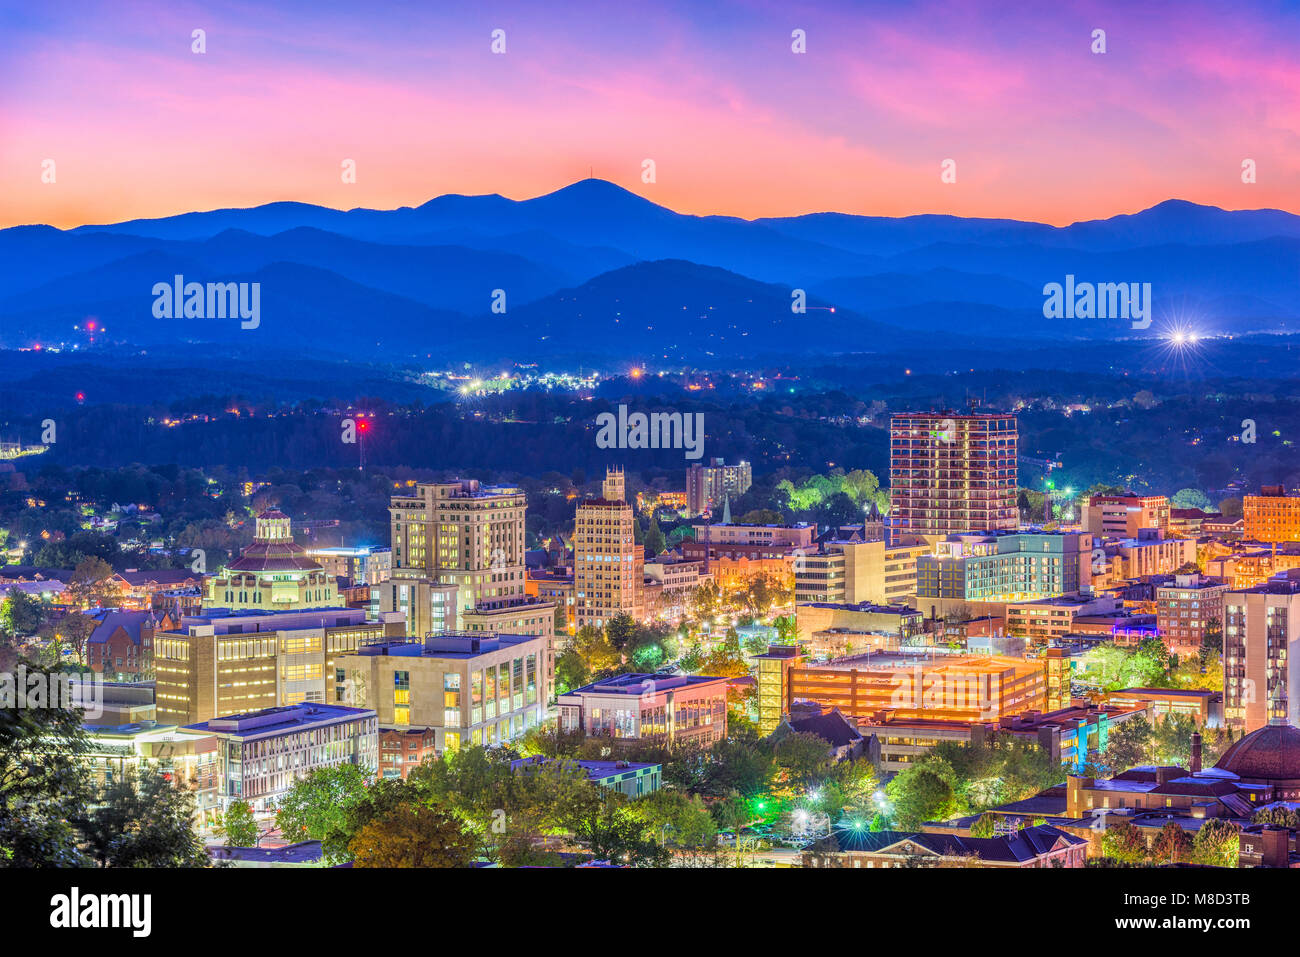 Asheville, North Carolina, USA skyline over downtown with the Blue Ridge Mountains. - Stock Image